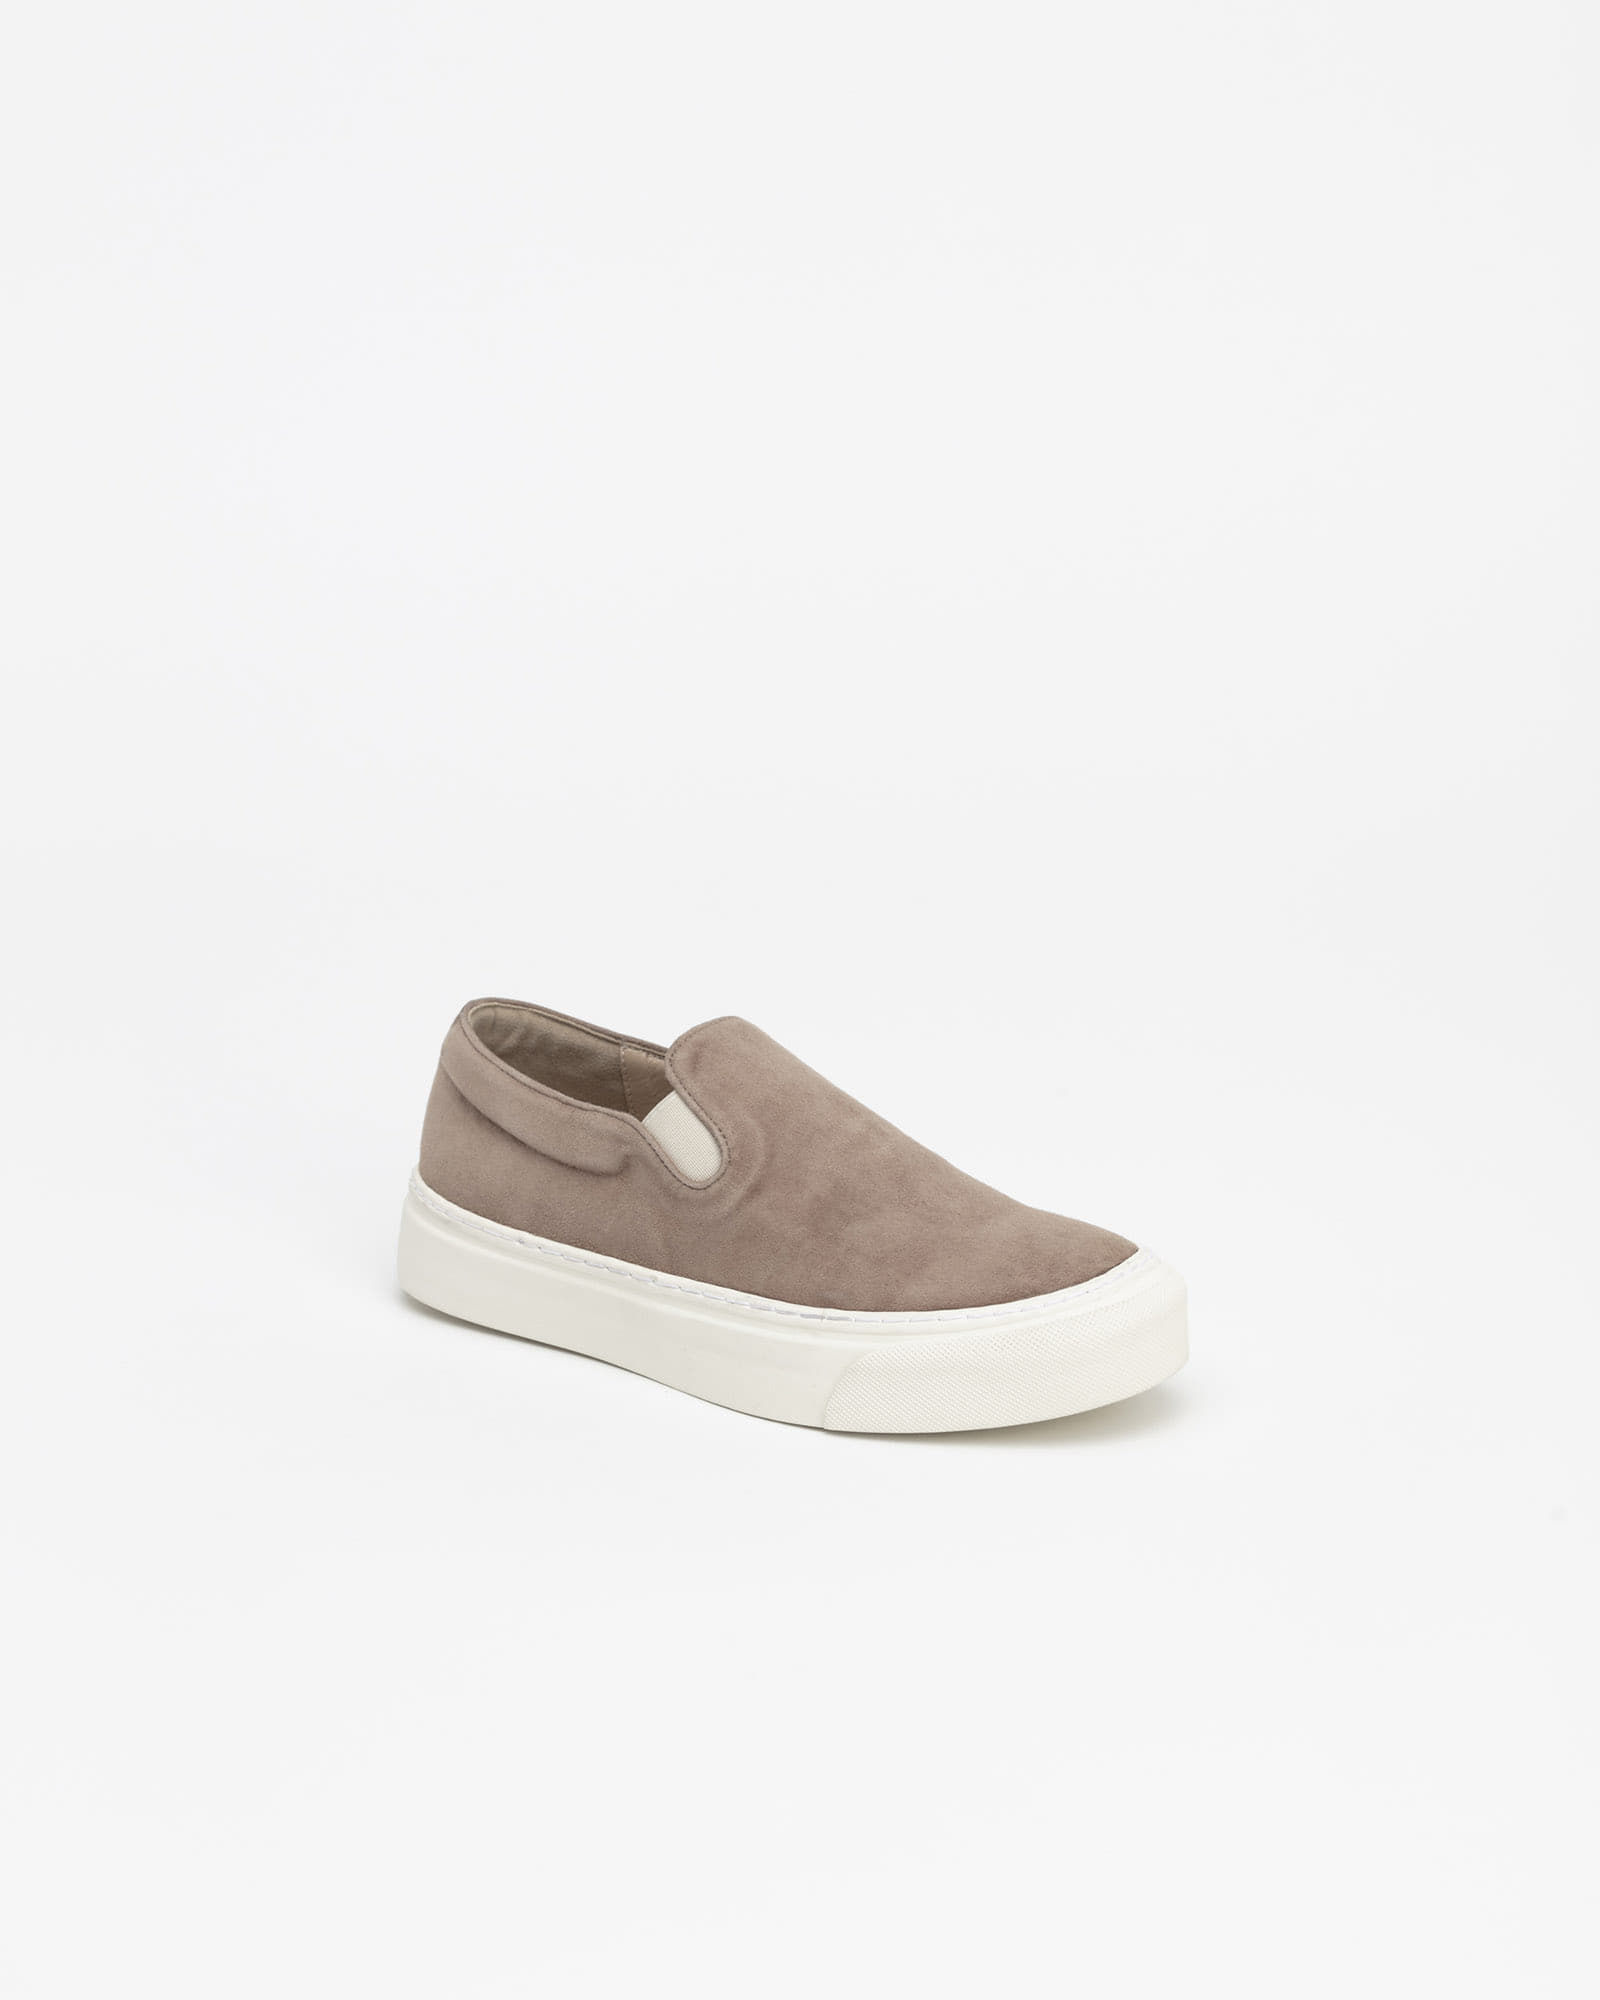 Palo Slip-on Sneakers in Pinky Mocha Suede